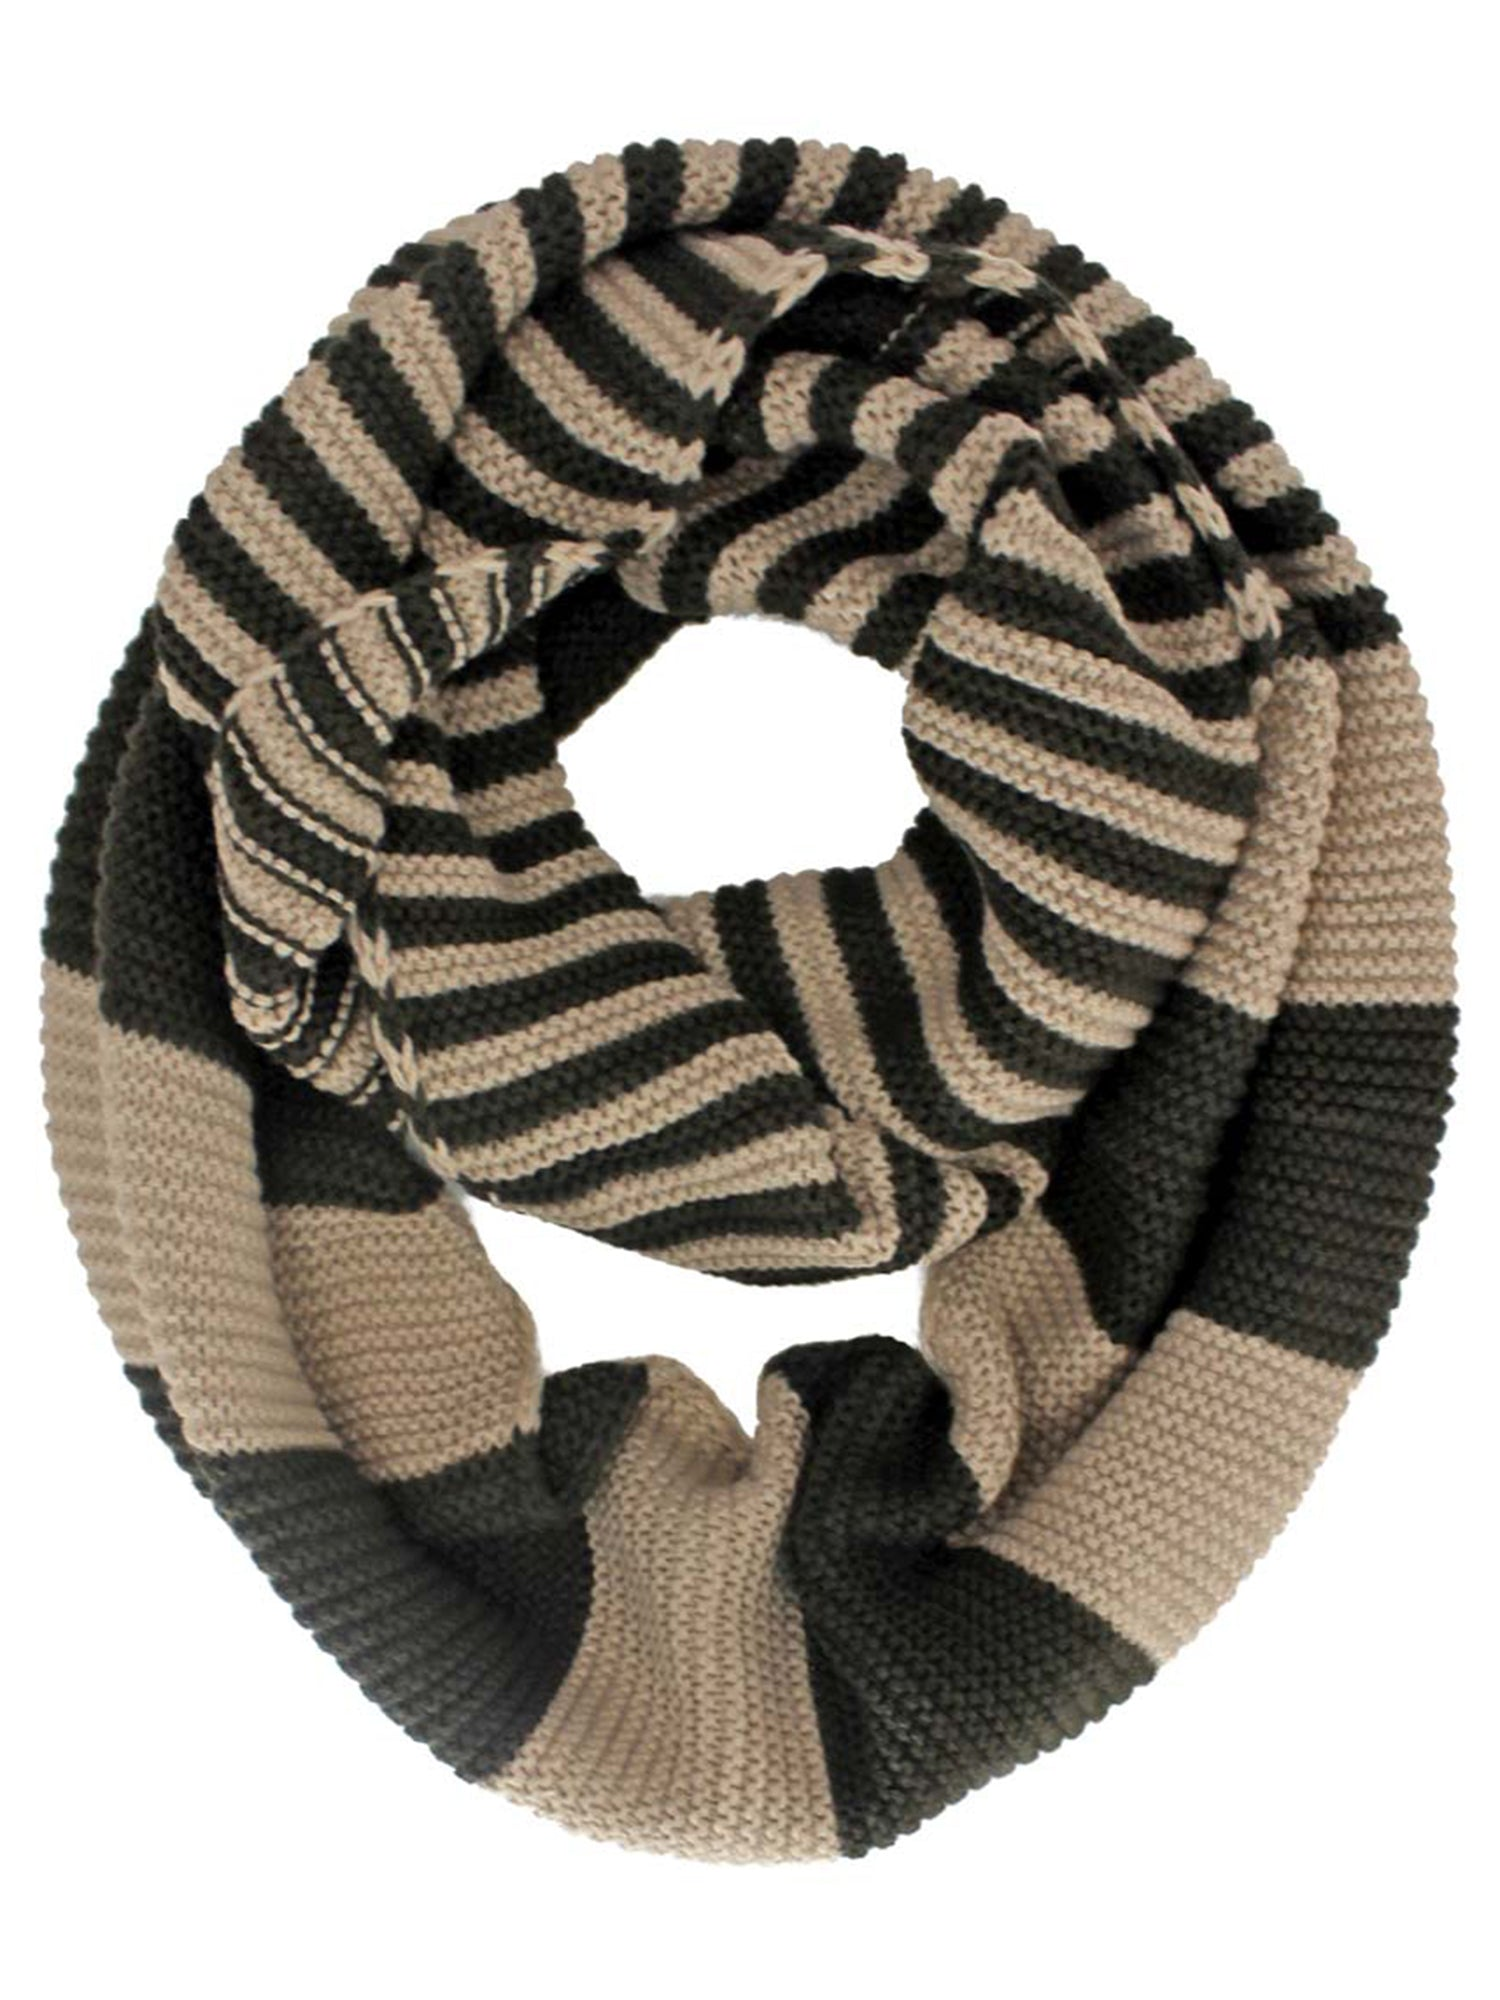 Knit Striped Infinity Scarf